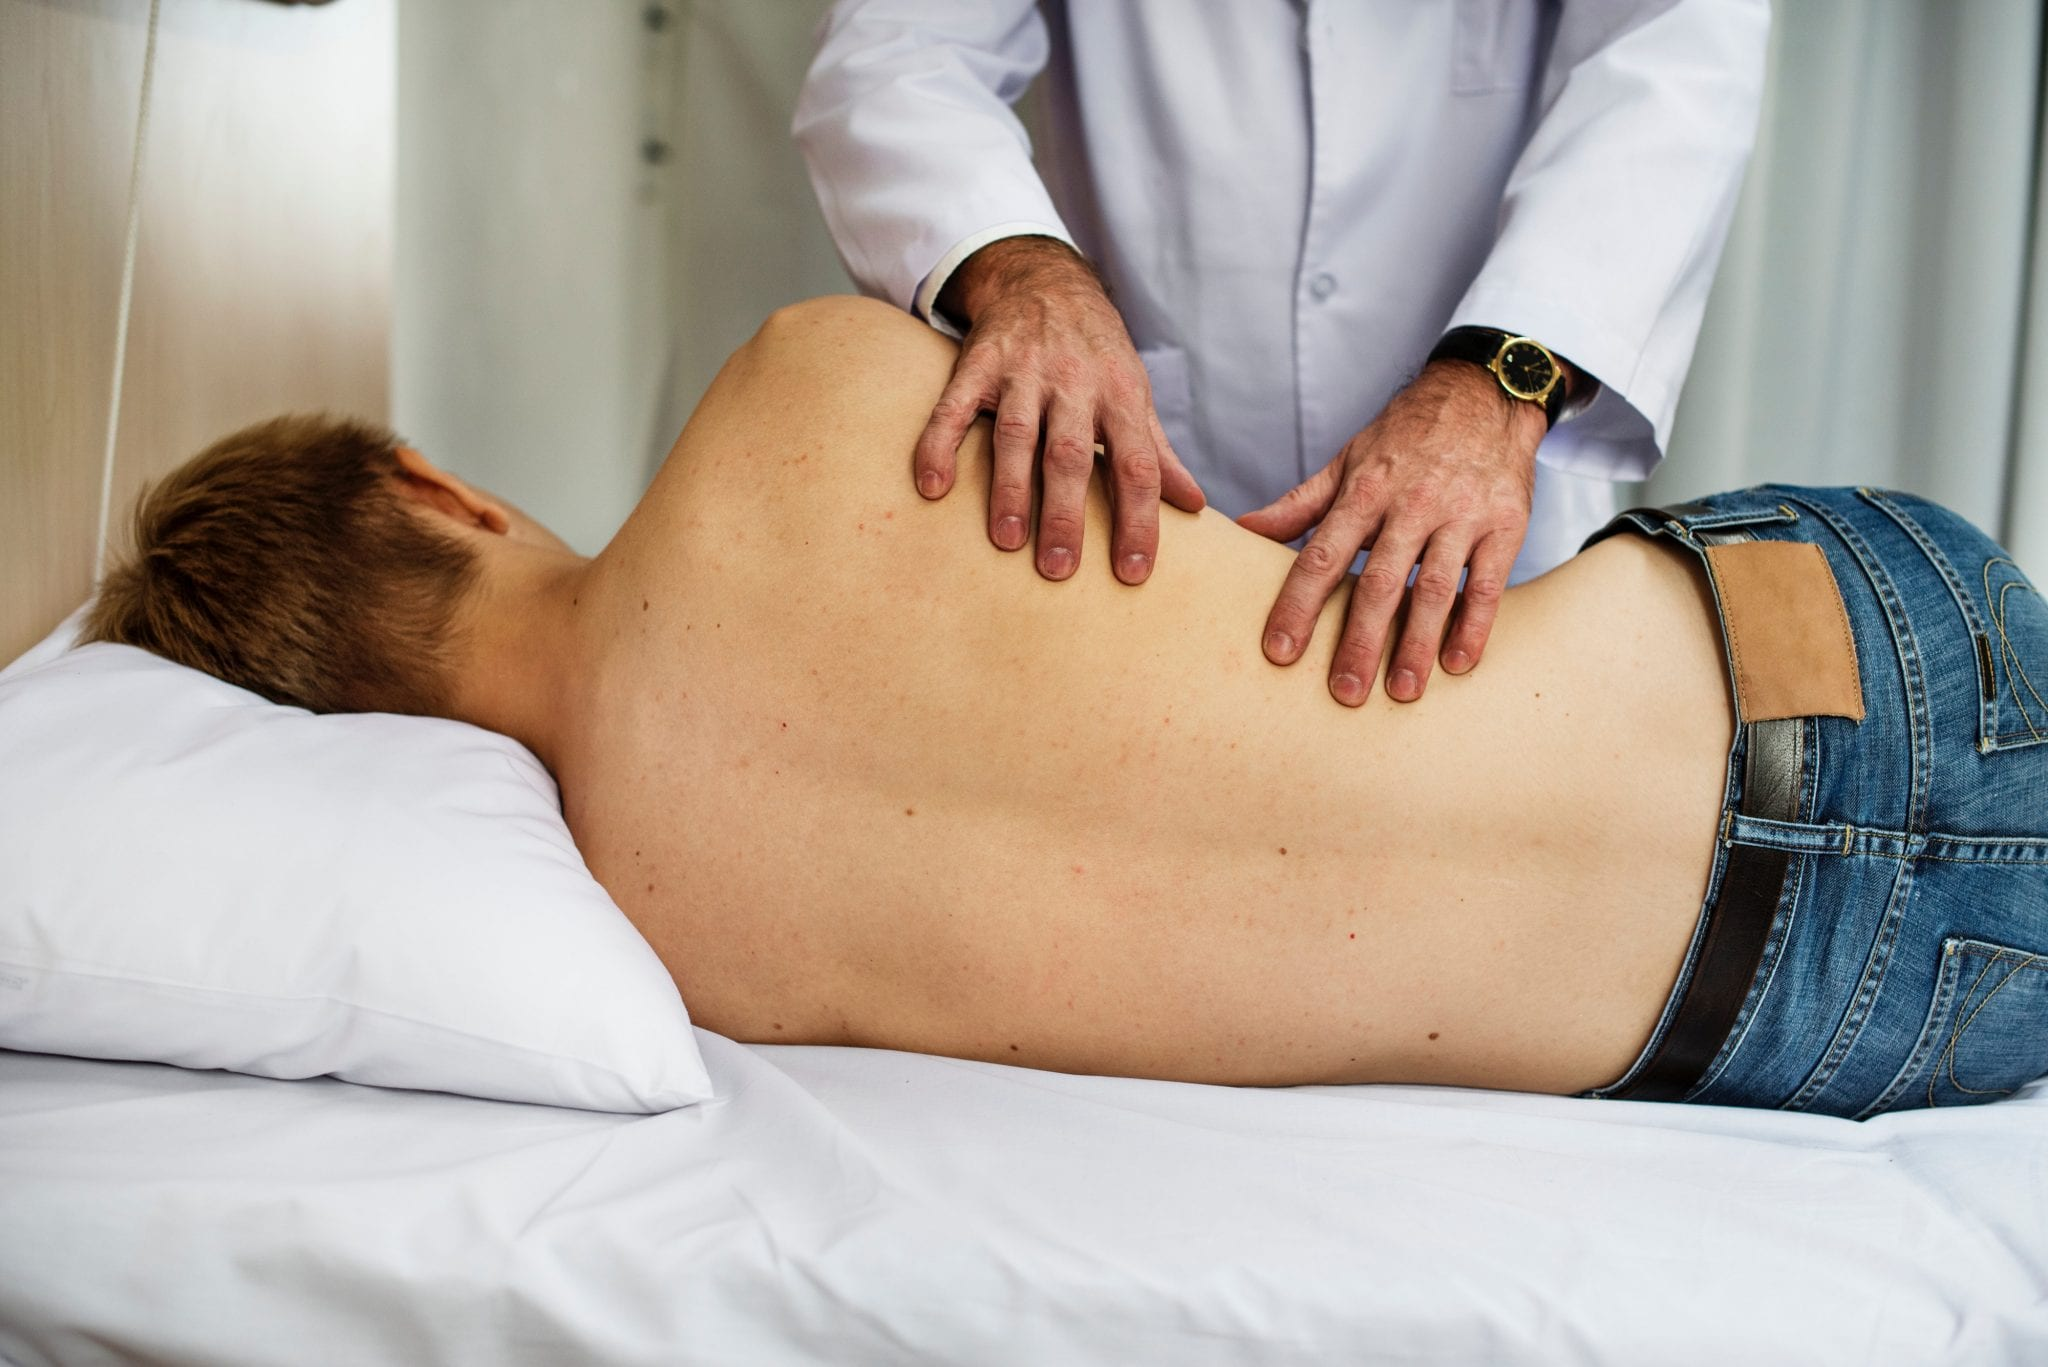 Chiropractor osteopathy explained Thornbury